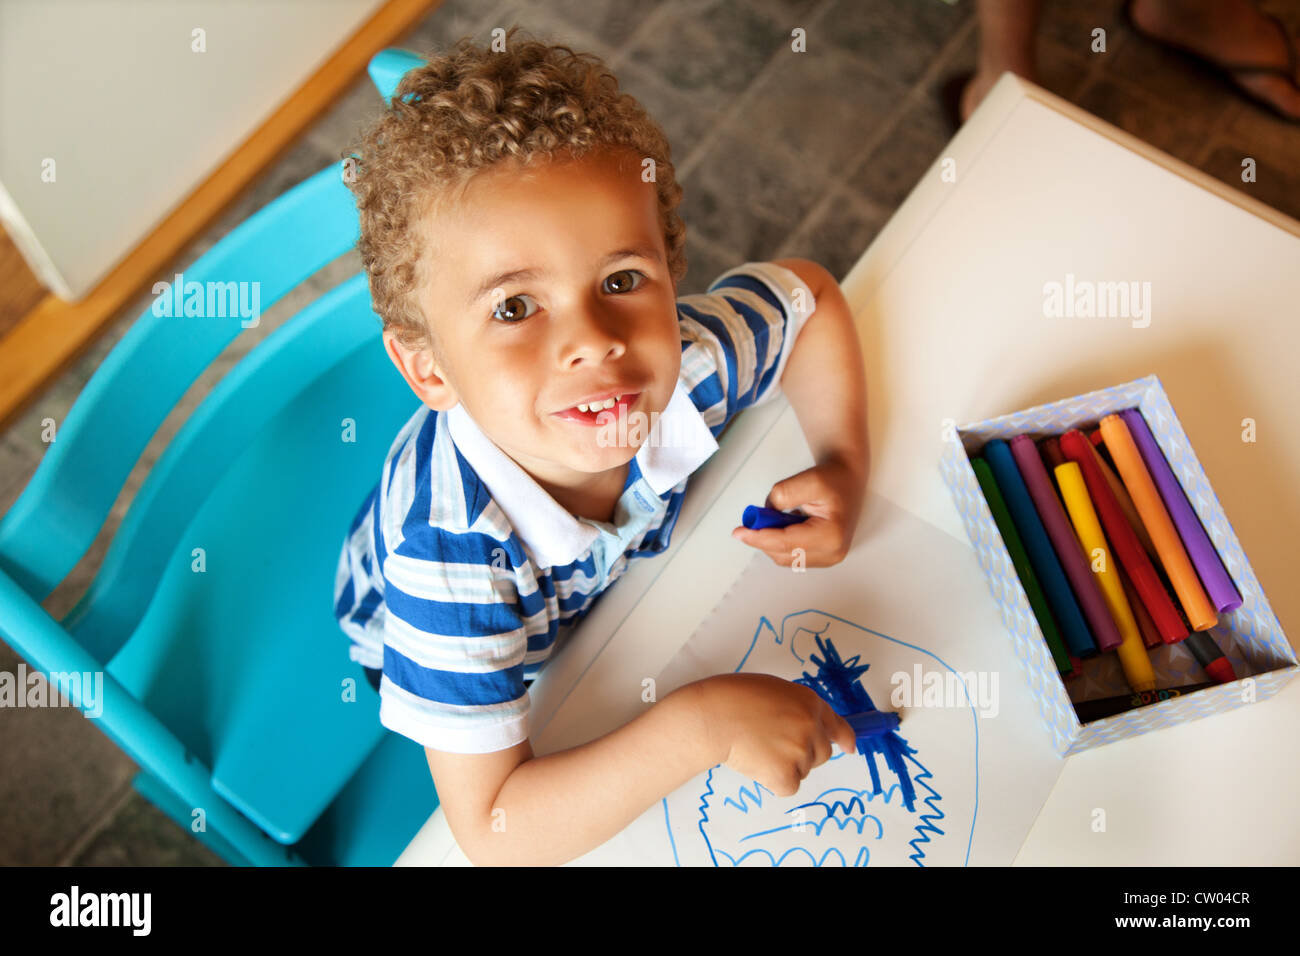 Charming Little Kid Looking Up And Playing With Crayons